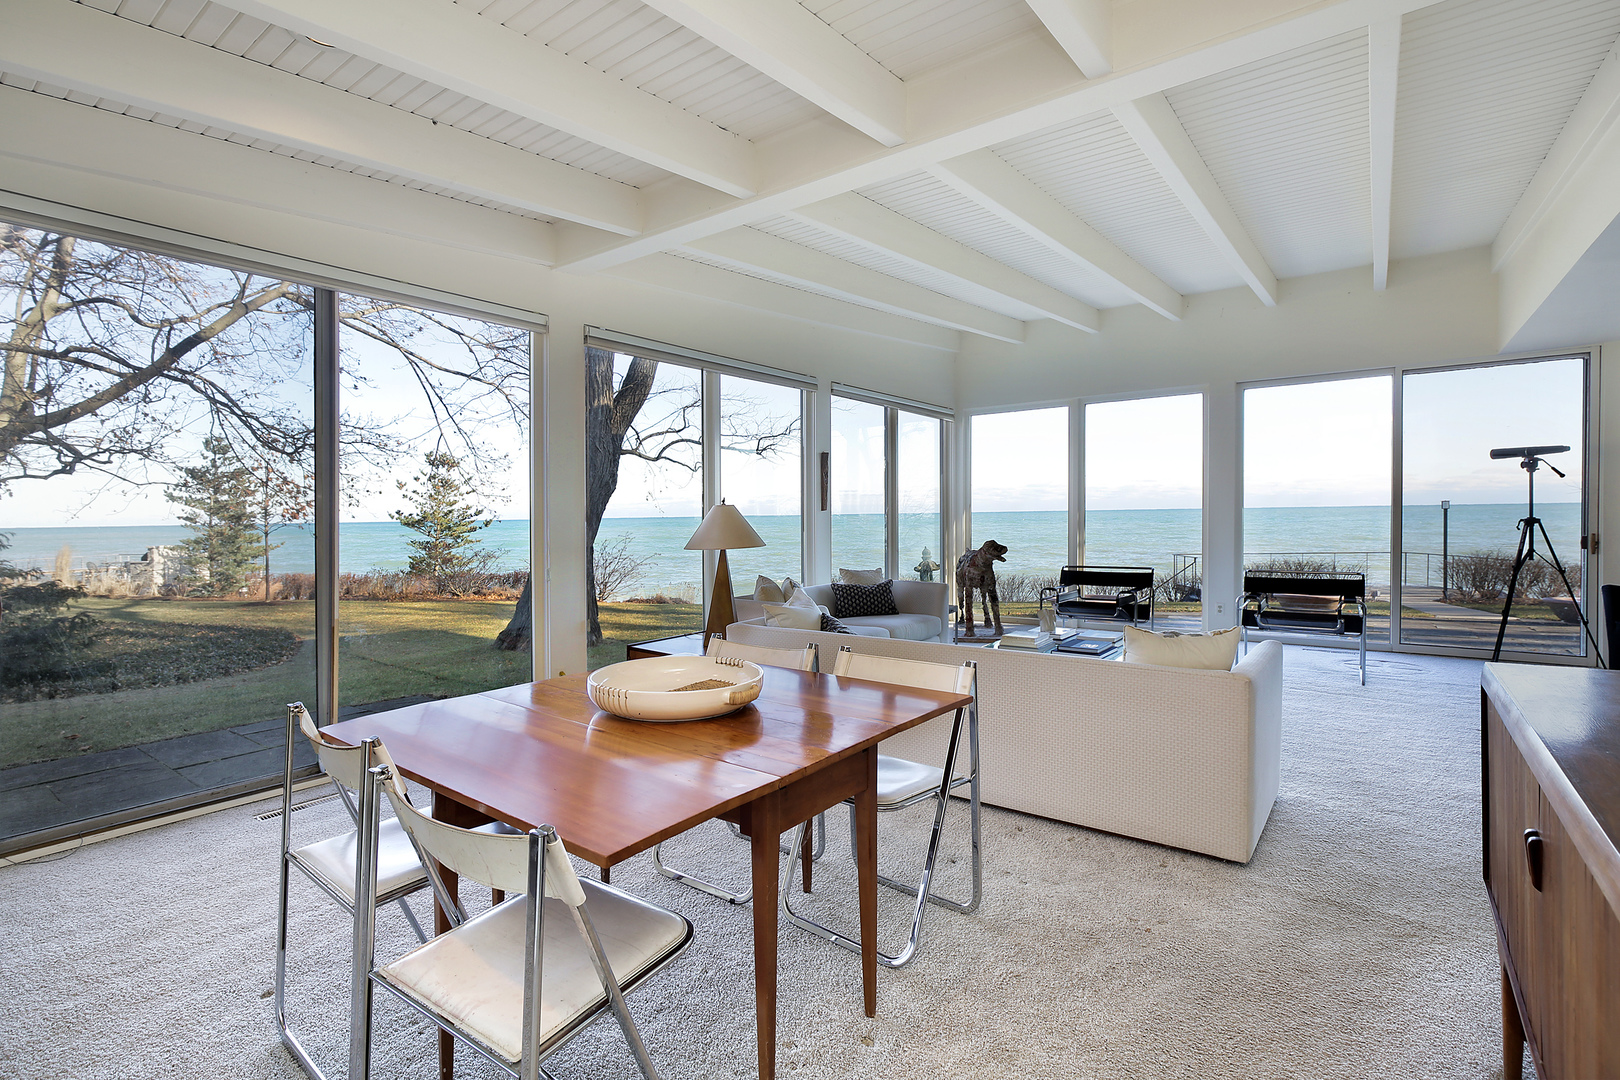 A corner living room with views of a large body of water through floor-to-ceiling windows.